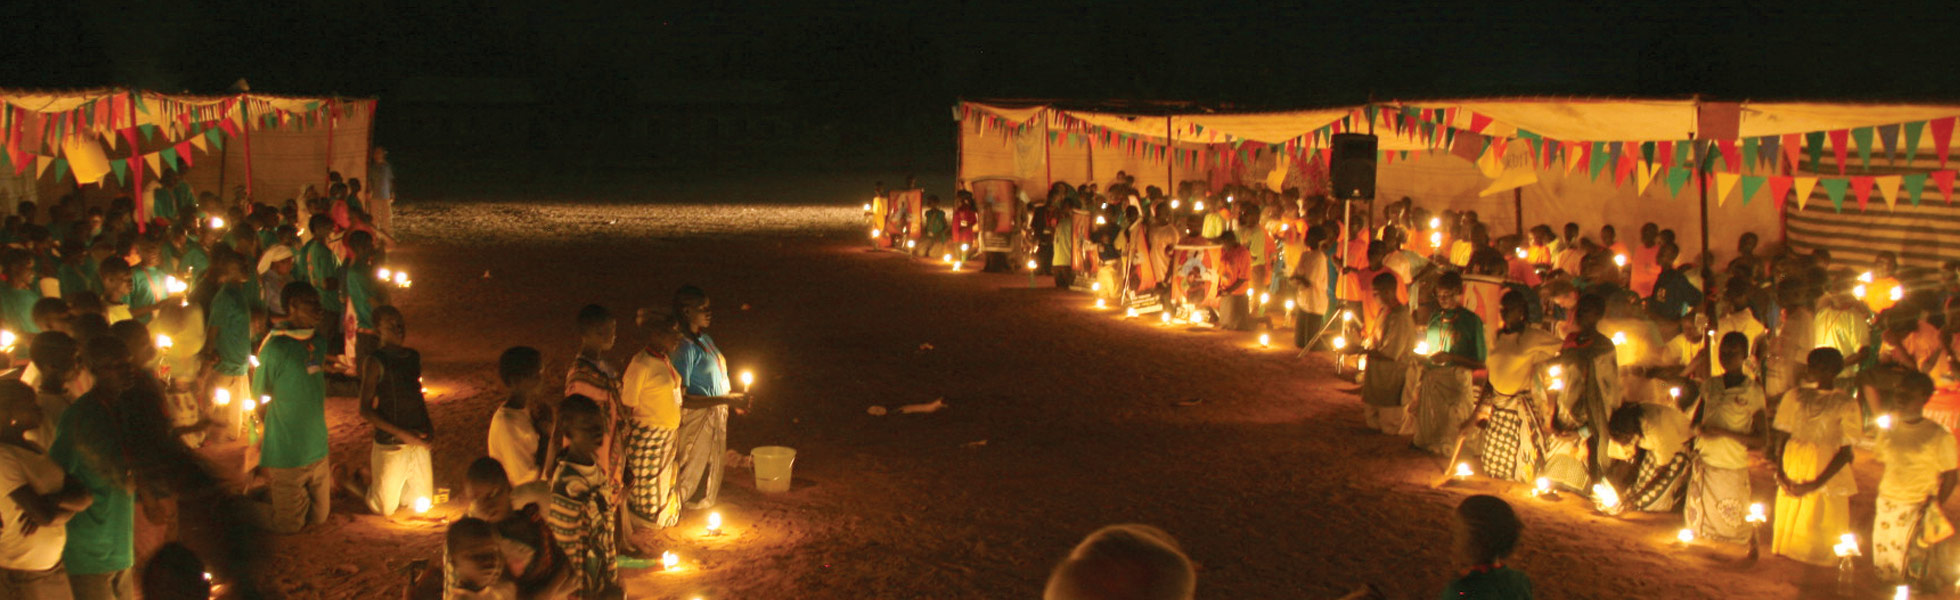 South Sudan: prayer for peace in a young nation still torn apart by violence